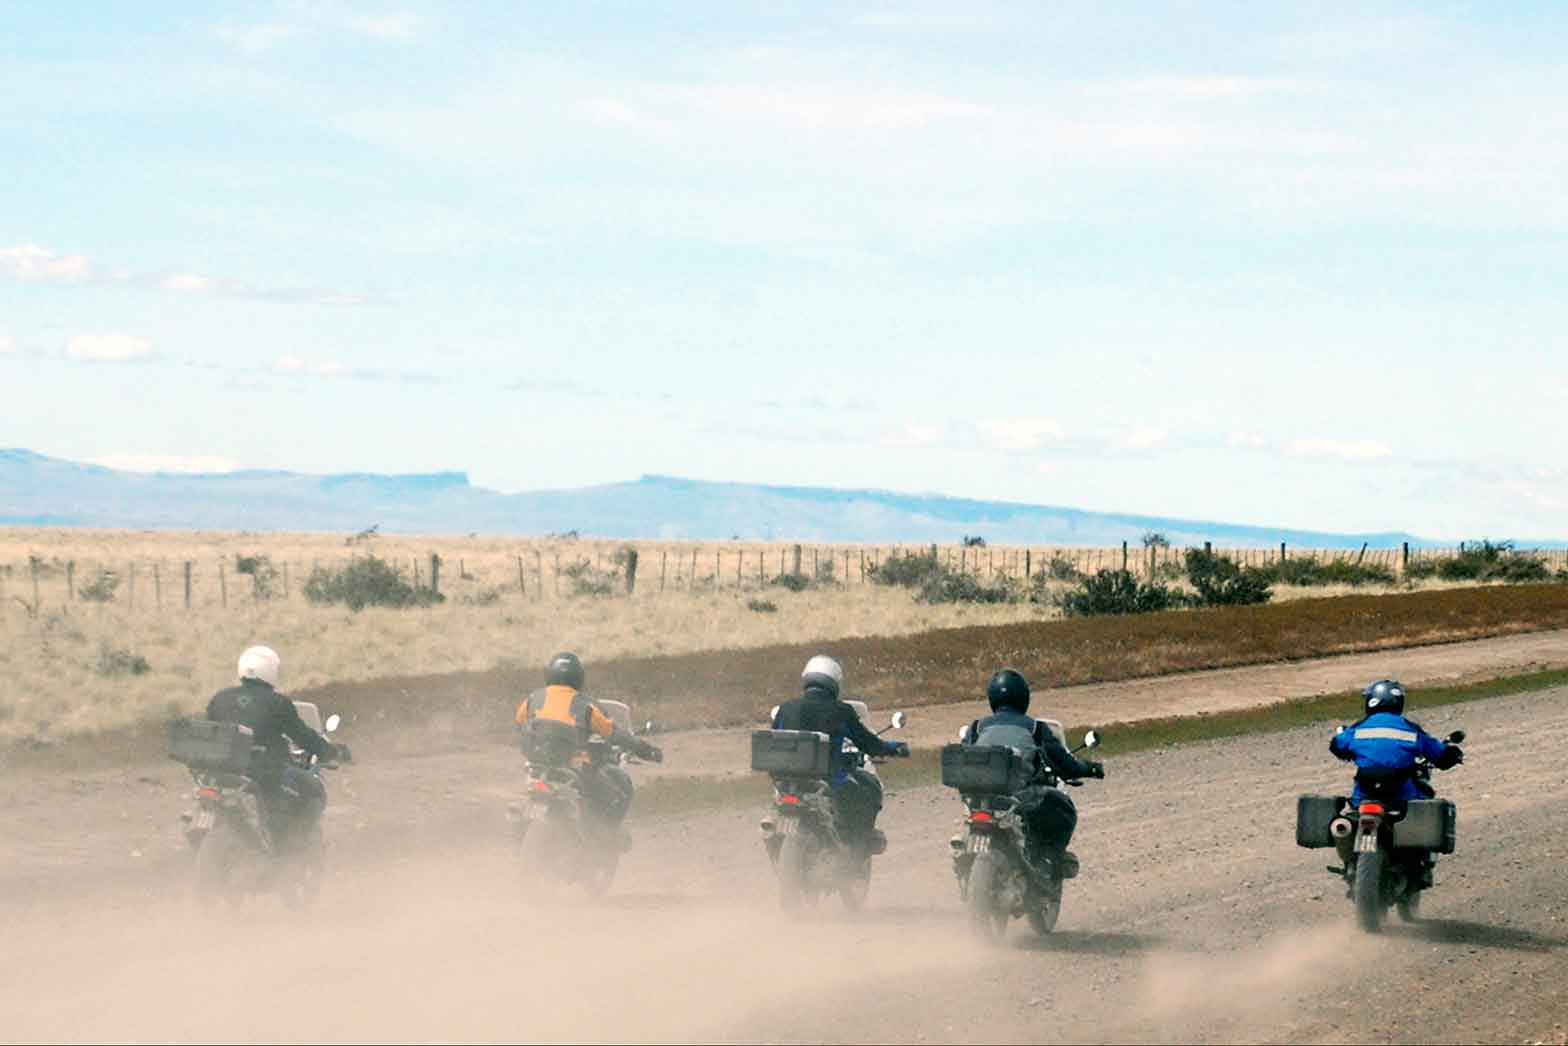 Five riders leaving Patagonia